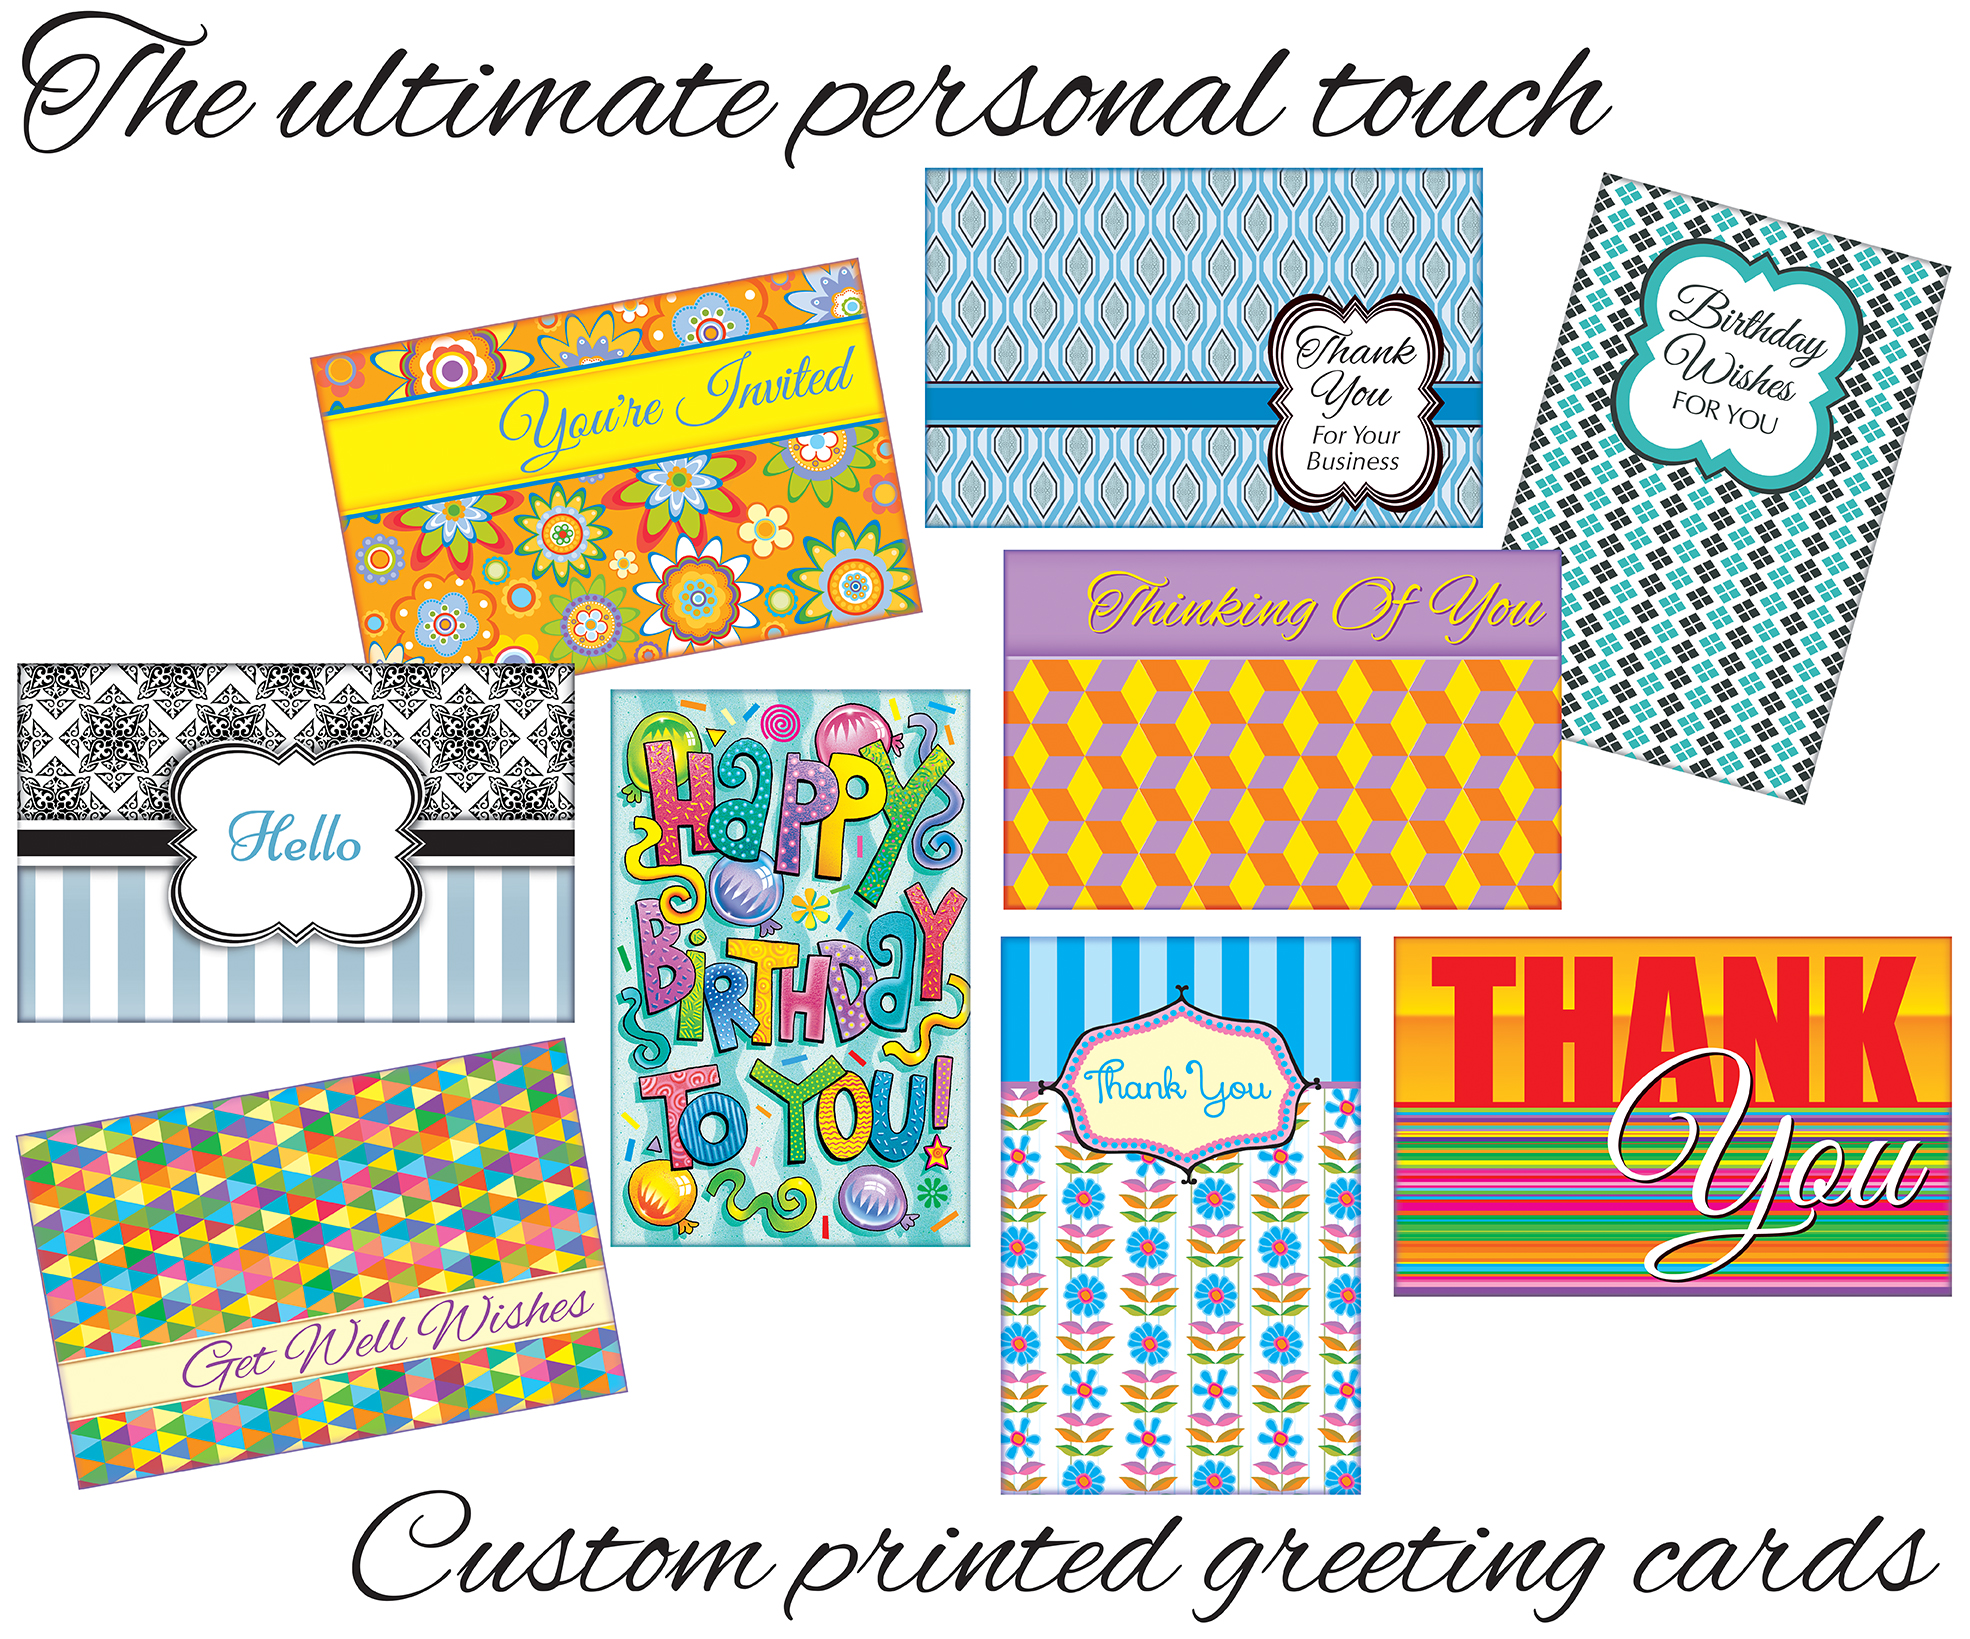 stockwell-greetings-wholesale-greeting-cards-custom.jpg